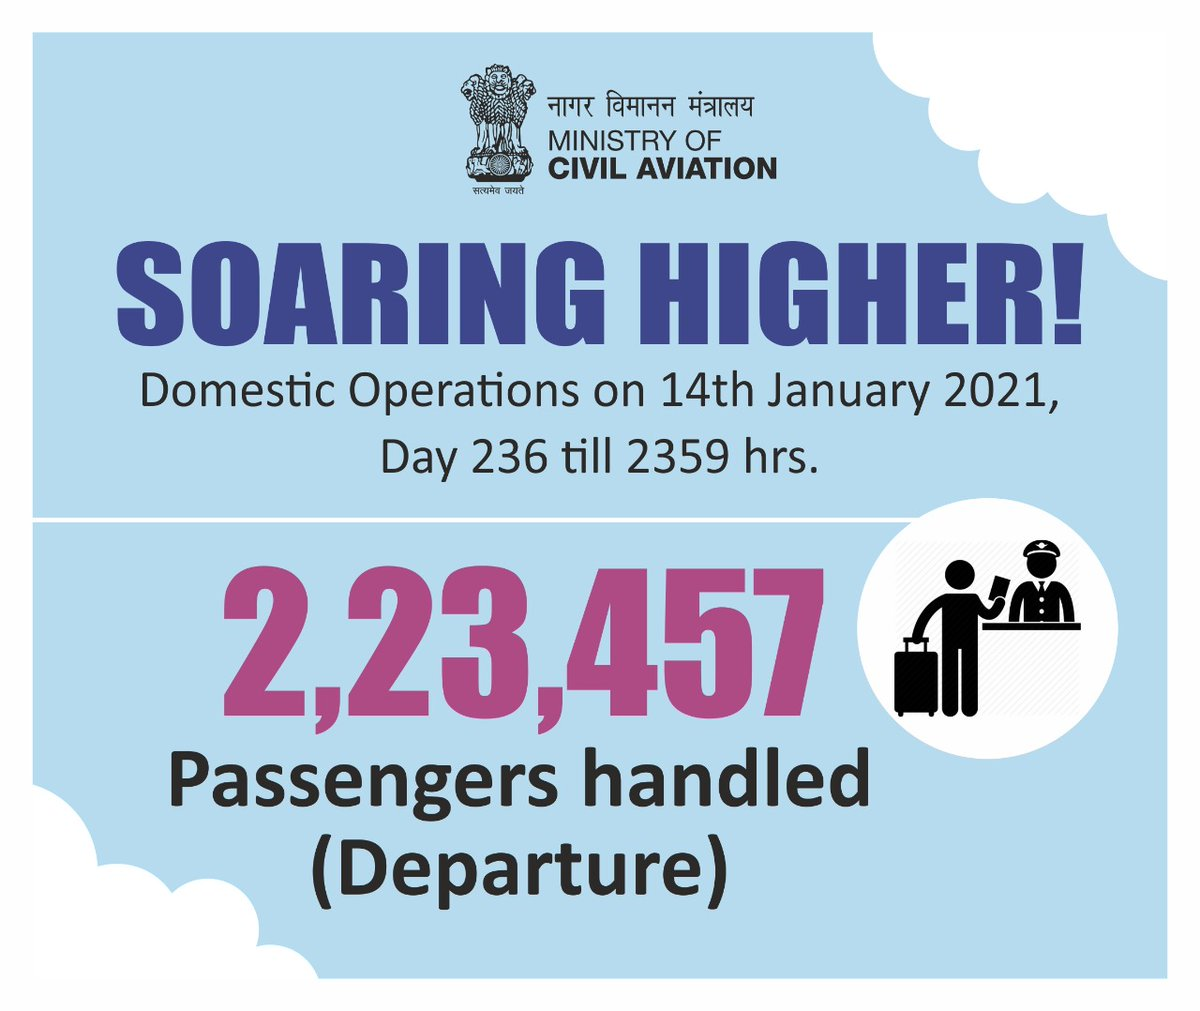 India soaring higher!  Over 2.23 lakh passengers took to the skies across the country on 14th January. Aviation operations continue to soar! #SabUdenSabJuden #IndiaFliesHigh